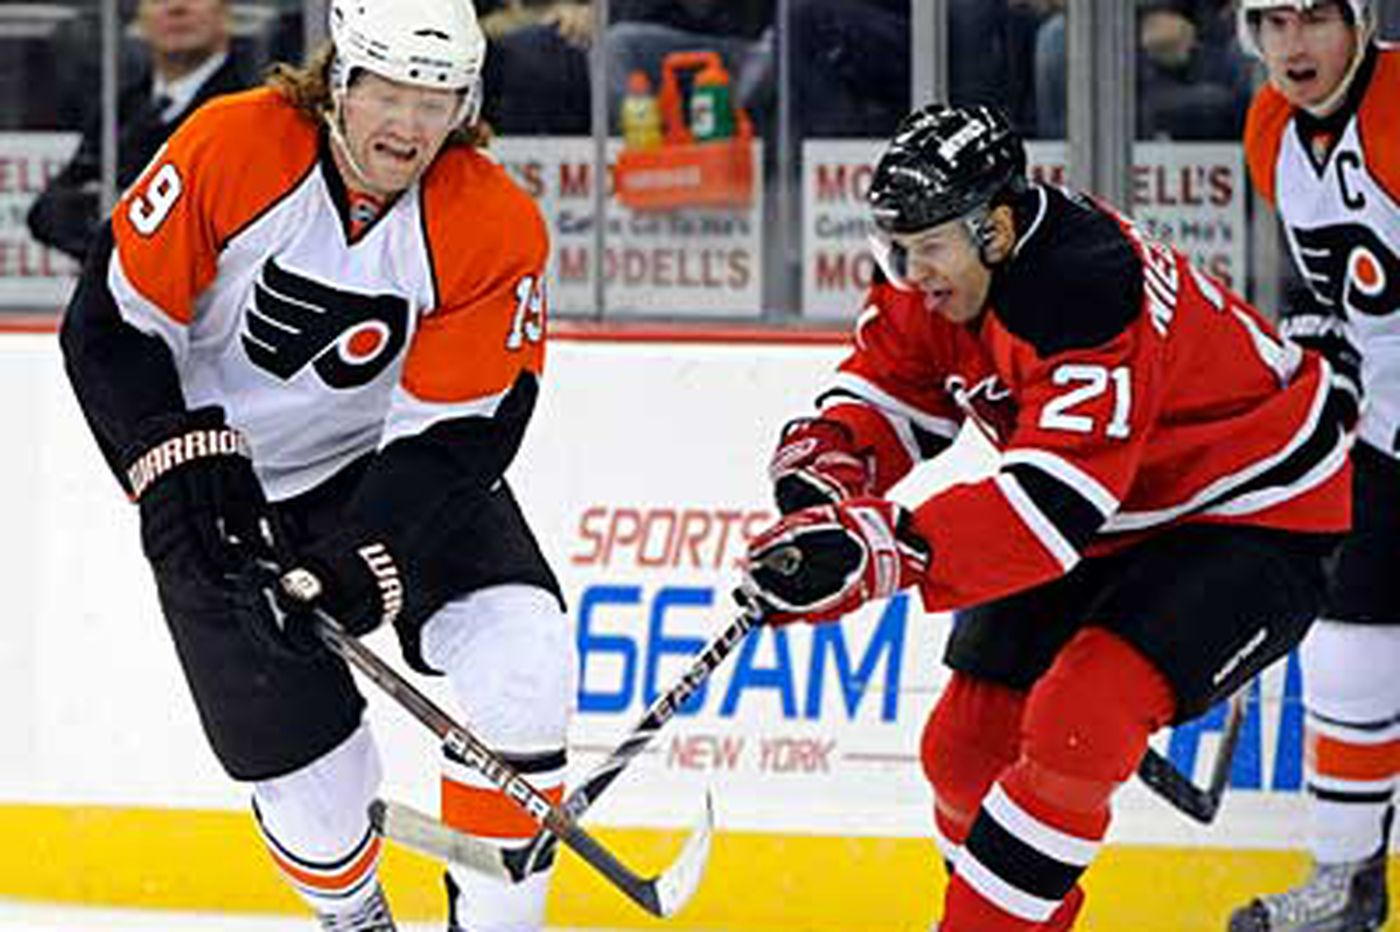 Flyers' Hartnell: 'We're only 25 or 30 games in'